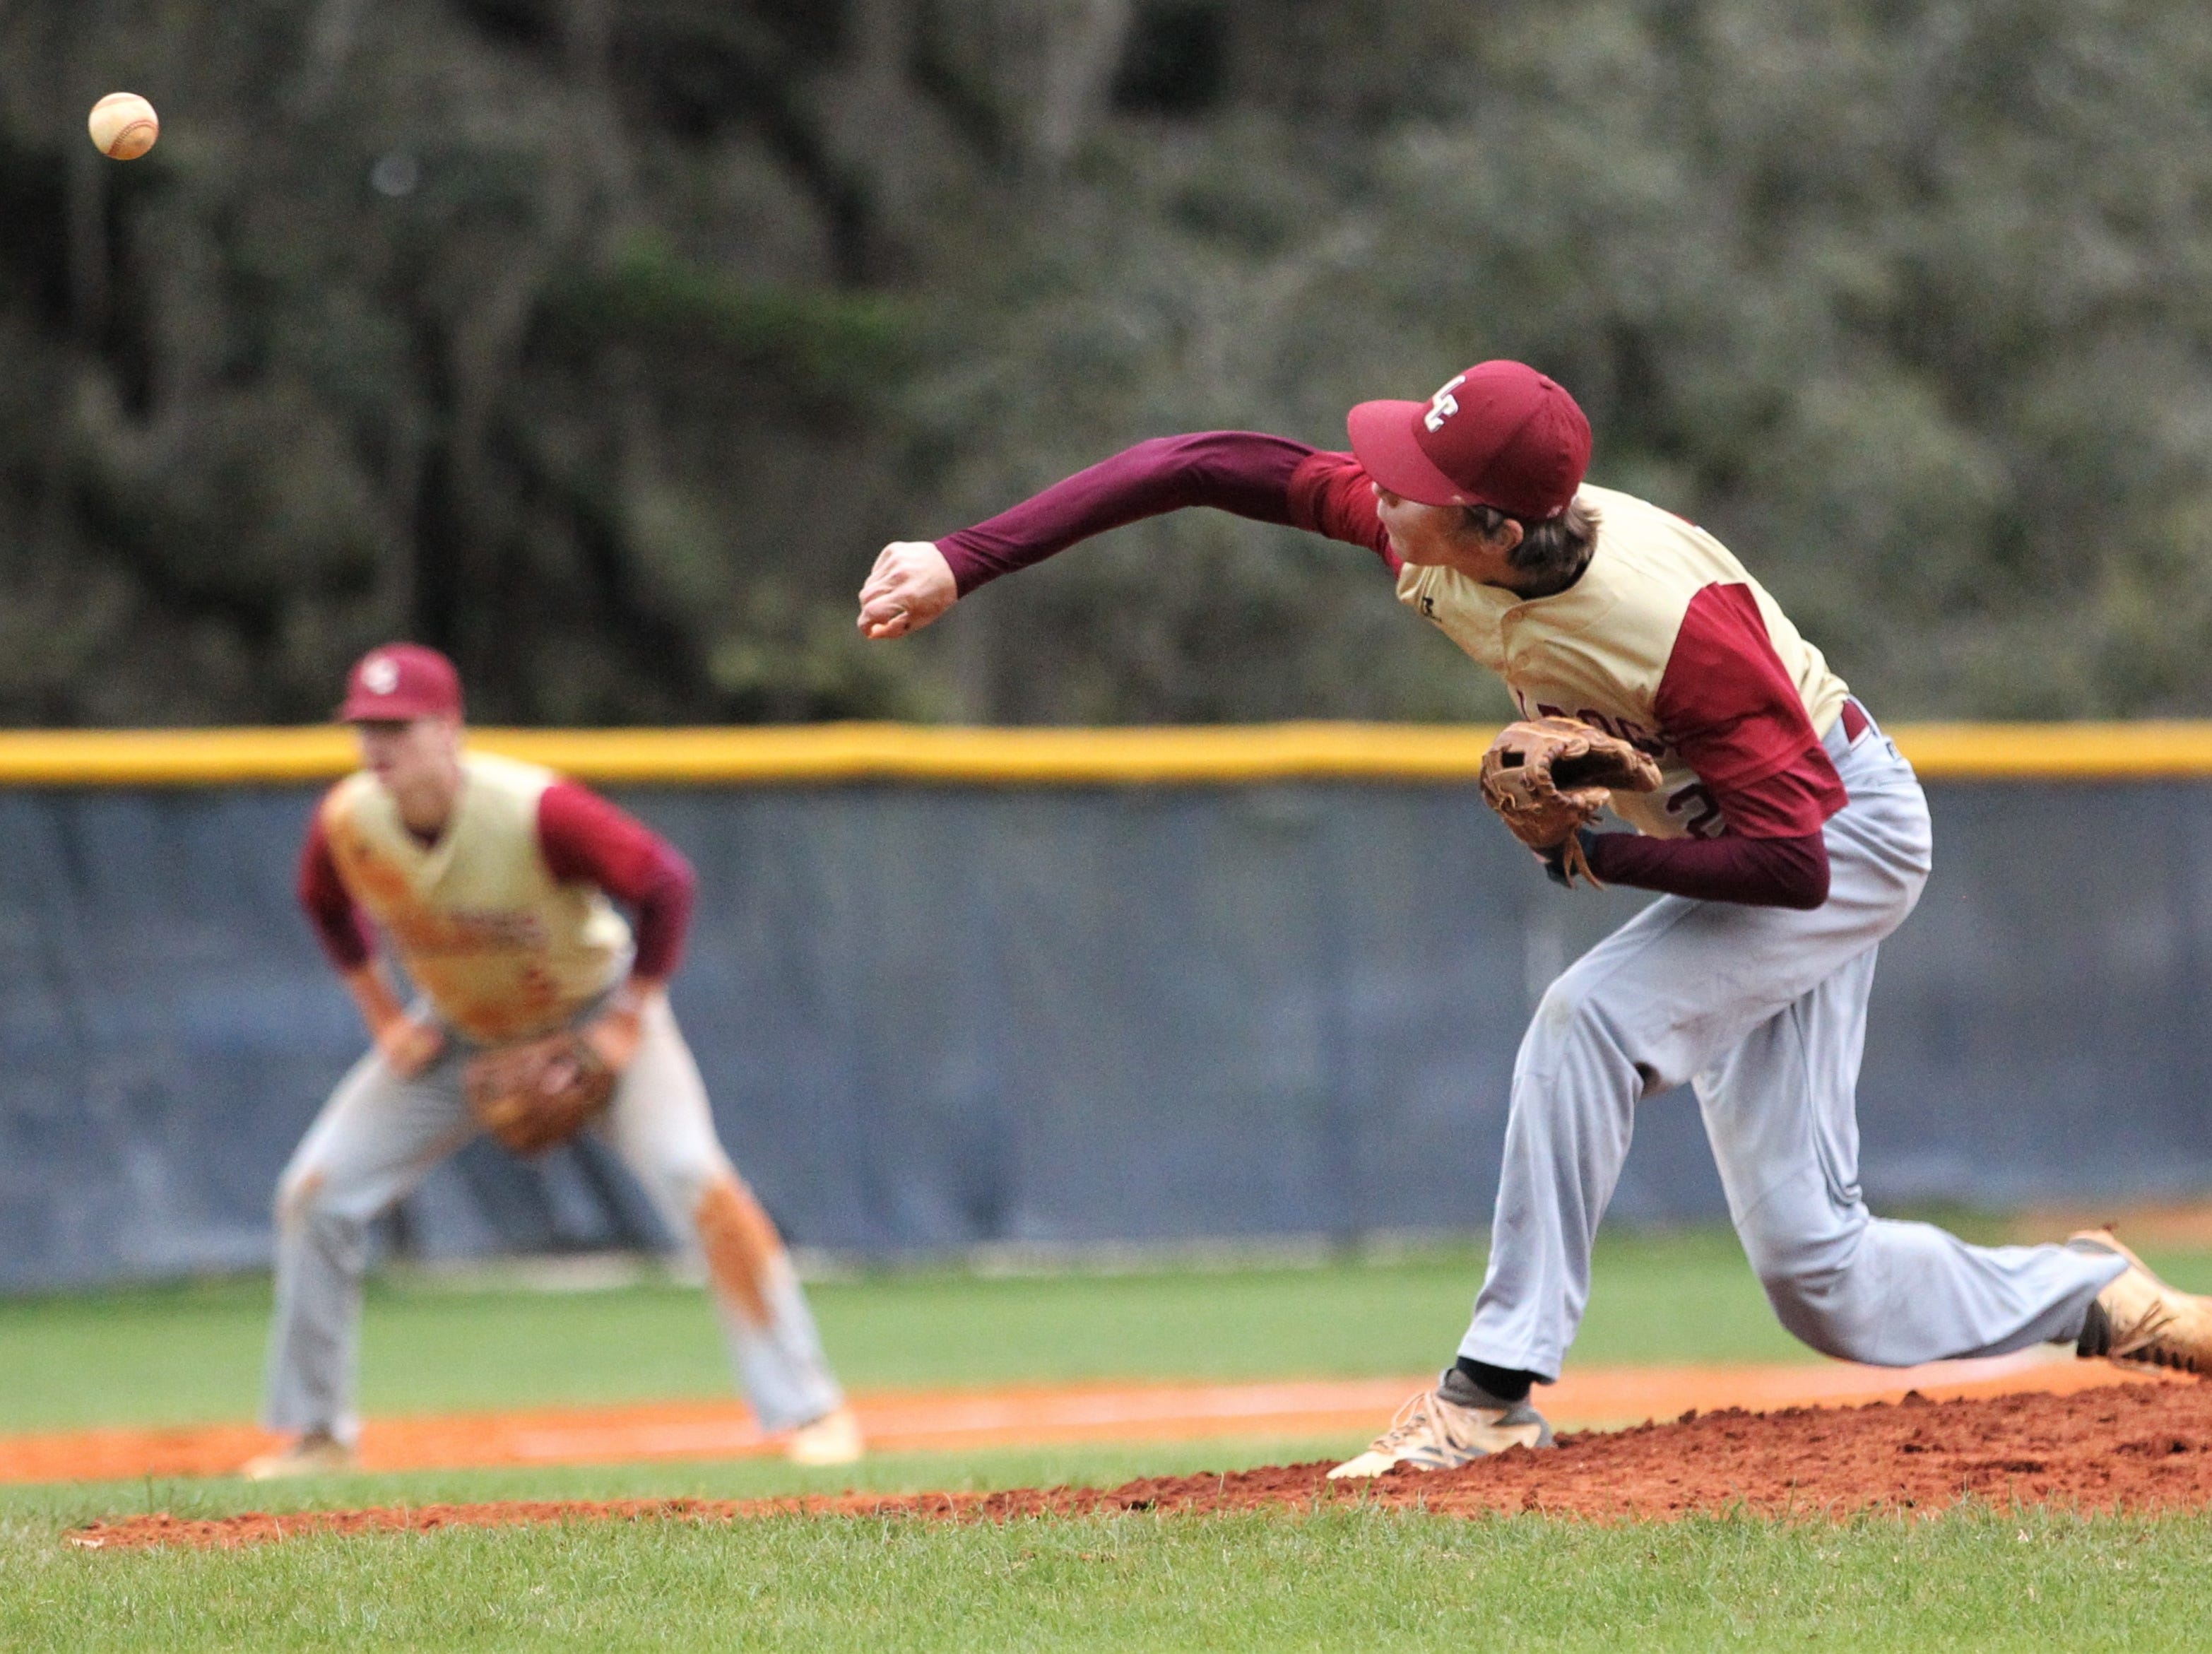 Liberty County senior Brent Fant pitches as Liberty County's baseball team went on the road to beat Maclay 8-2 on Saturday, March 16, 2019. The Bulldogs played their first game following their head coach Corey Crum's tragic death six days ago.